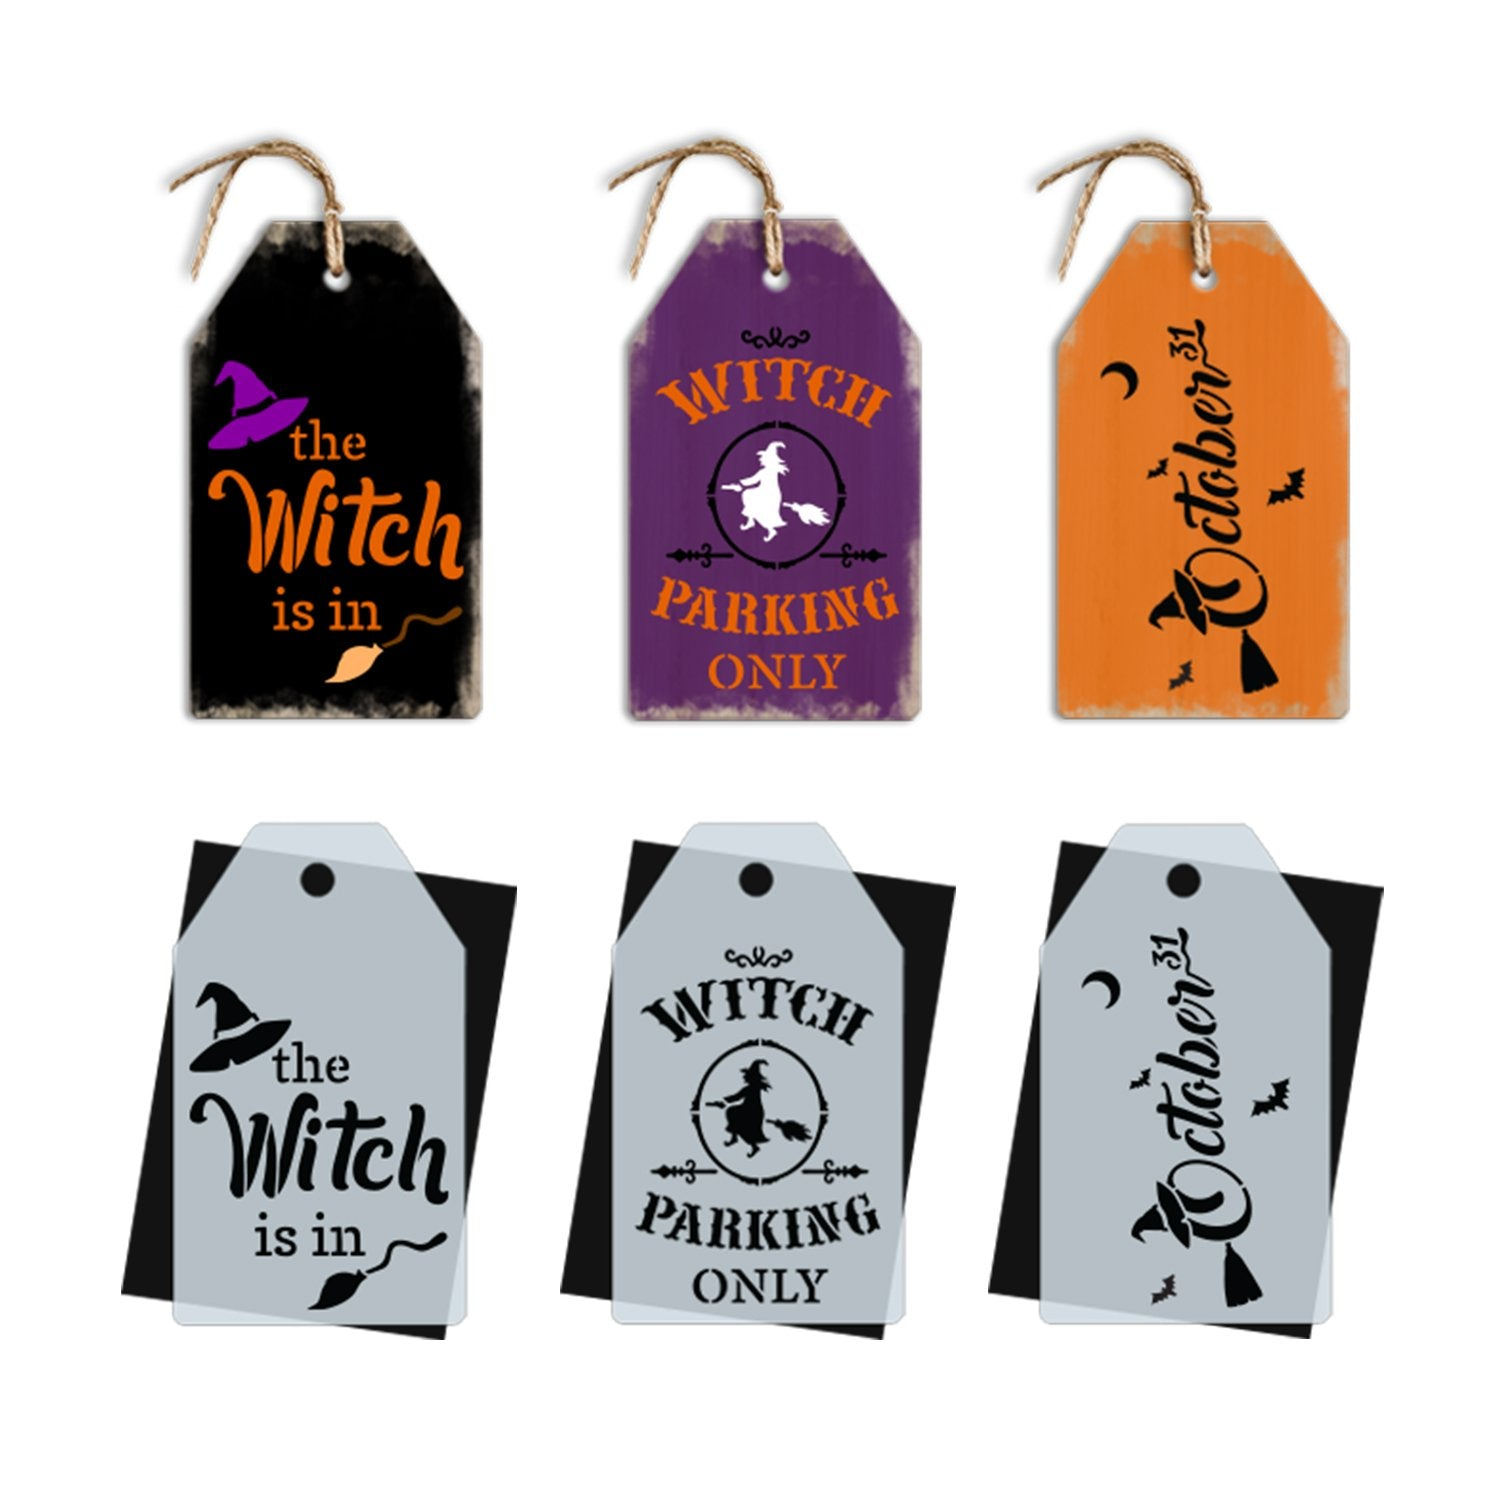 DIY reusable halloween mini stencils, Mini tag witch stencil signs, halloween tier tray decor, The witch is in mini sign stencil, witch parking only mini tag stencil, October 31st witch halloween mini tag sign stencil